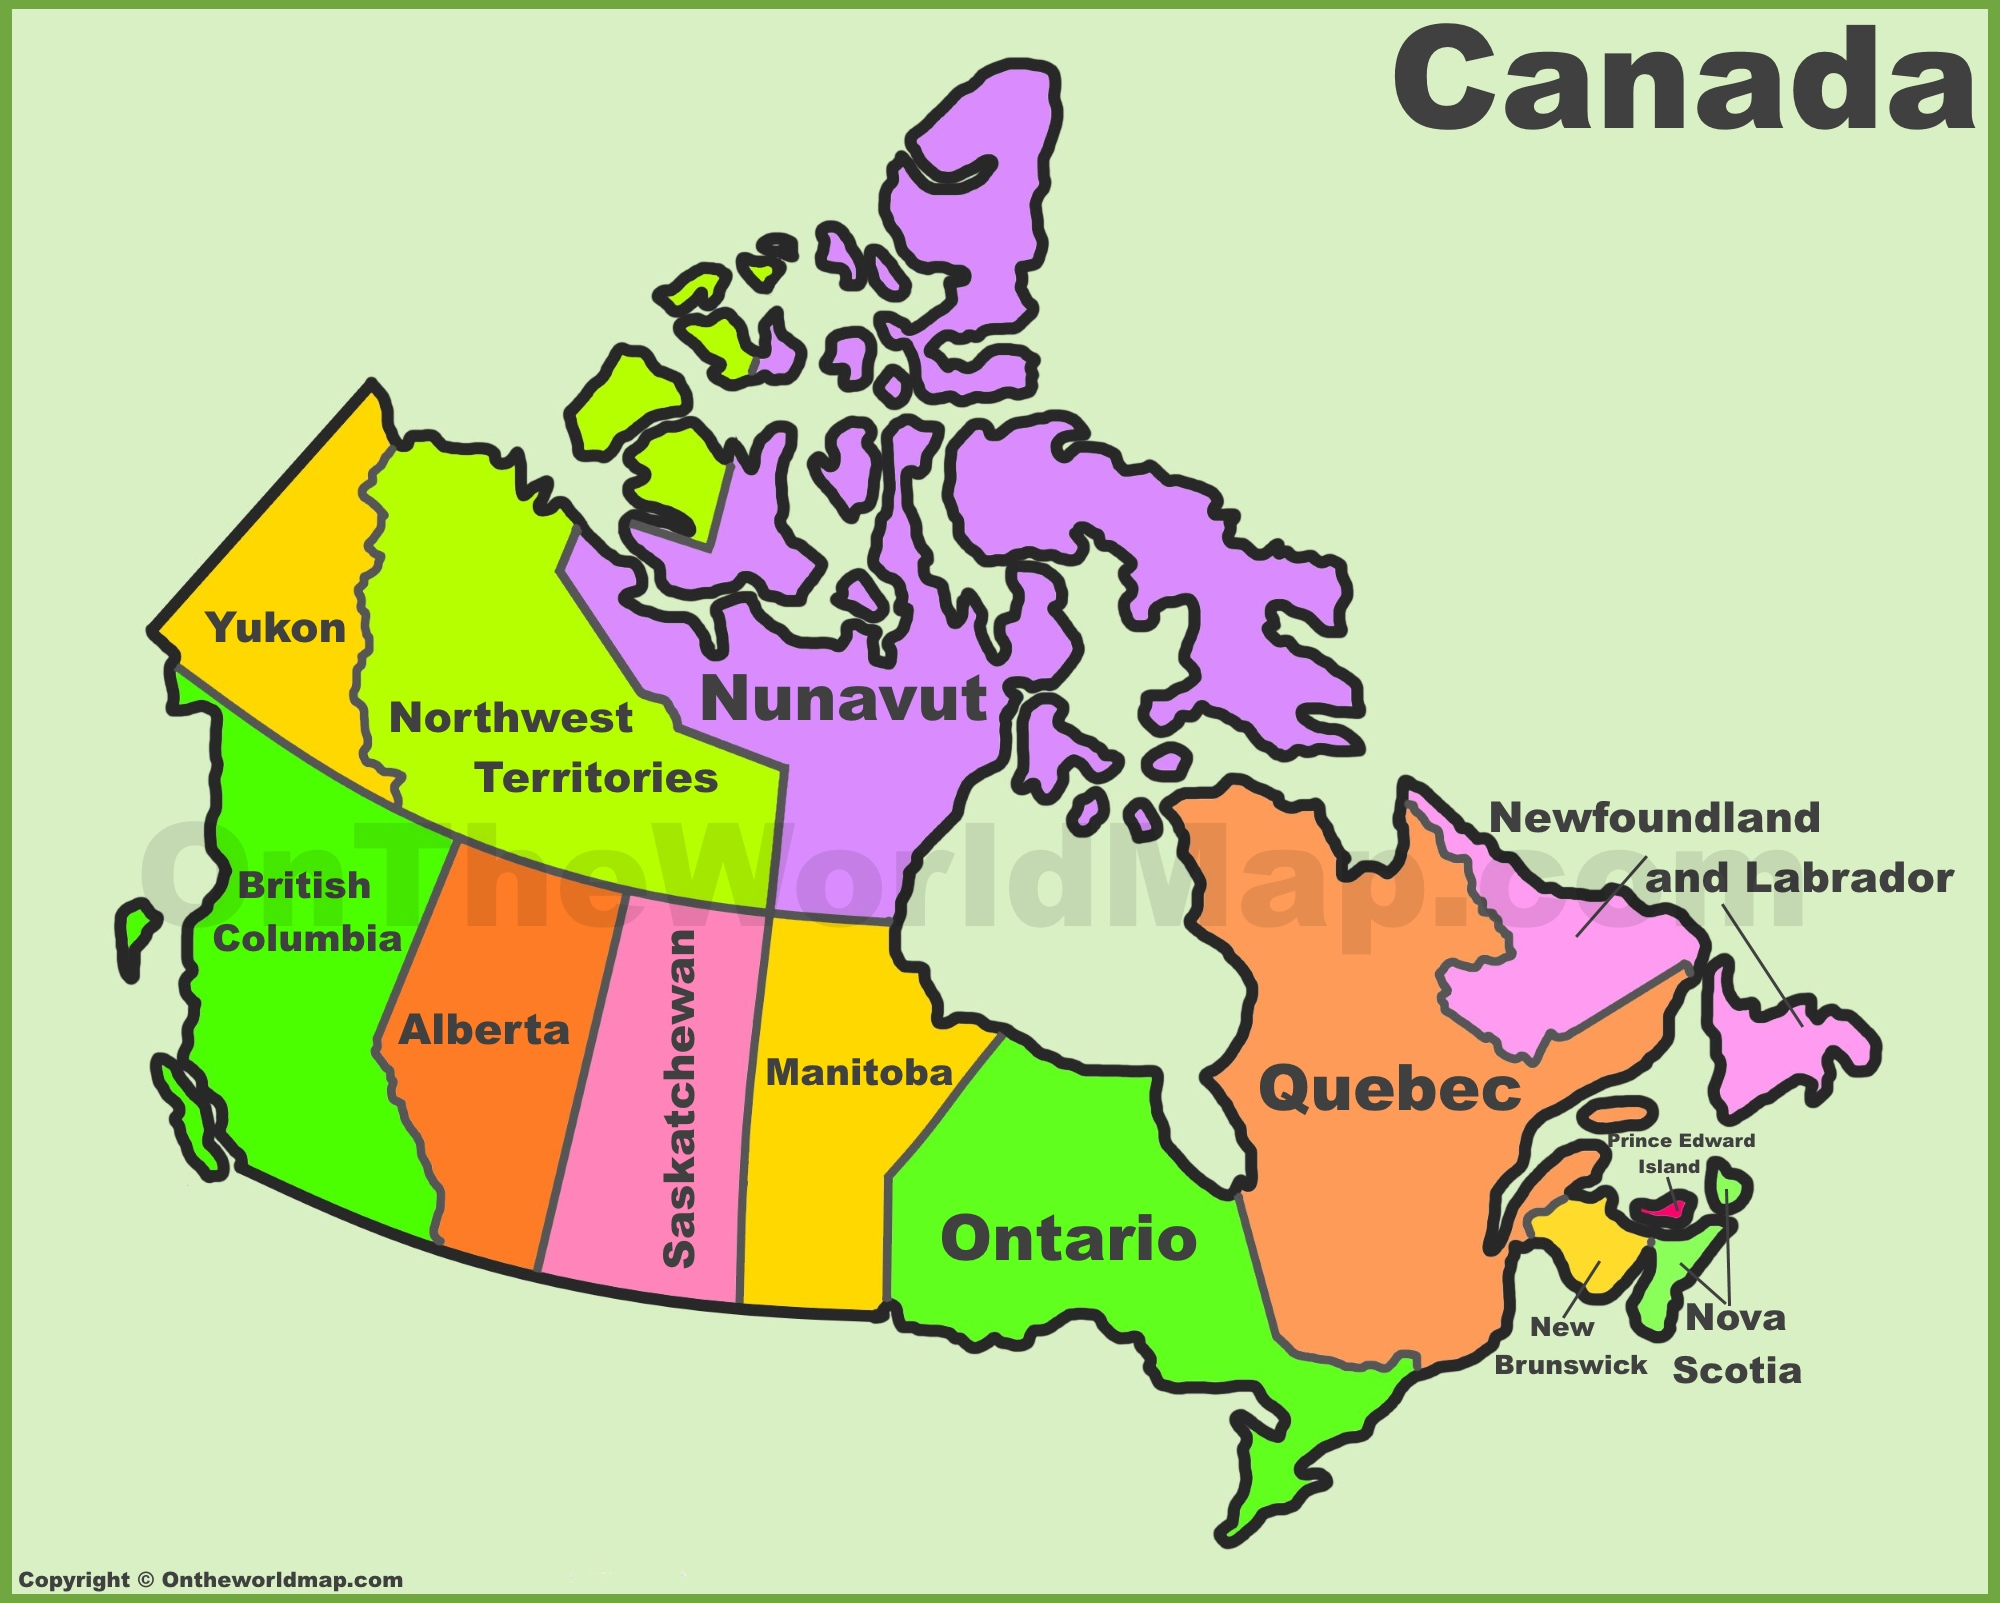 Map Of Canada Provinces Canada provinces and territories map | List of Canada provinces  Map Of Canada Provinces